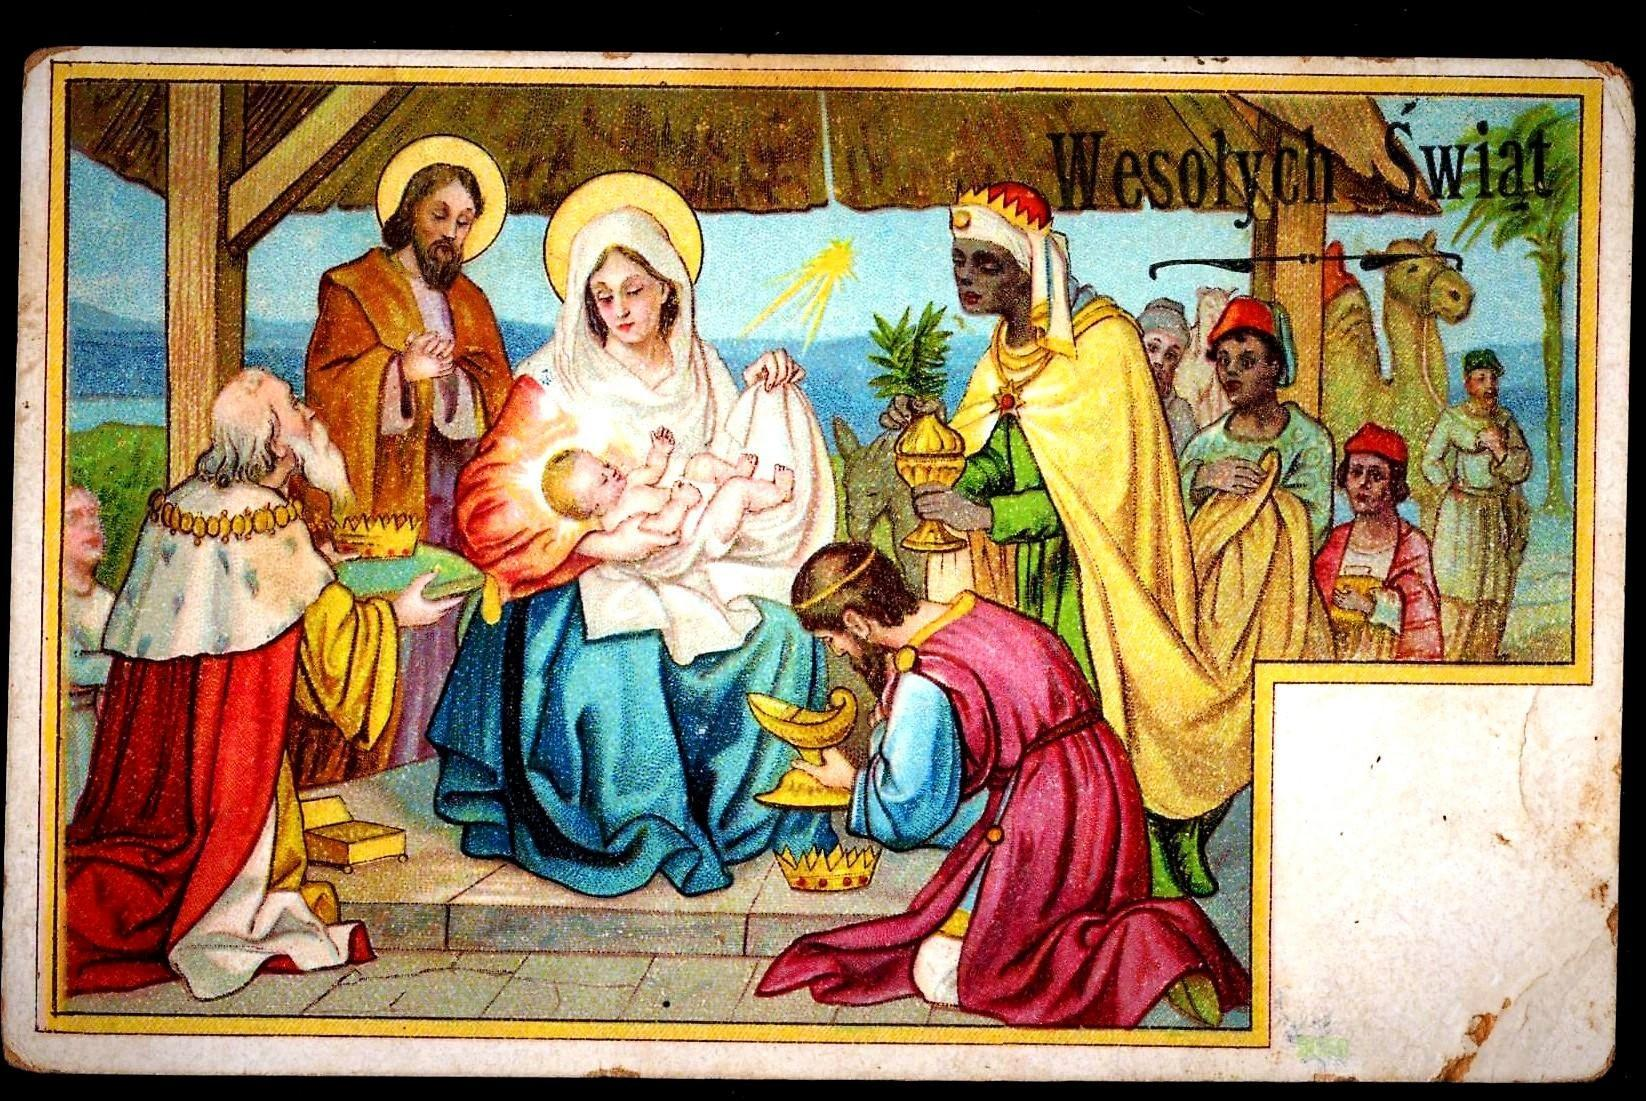 c1910 Religious Christmas Nativity Vintage Postcard - Baby Jesus - Magi Bearing Gifts - Holy Family Virgin Mary & Joseph - Polish Greeting and Message